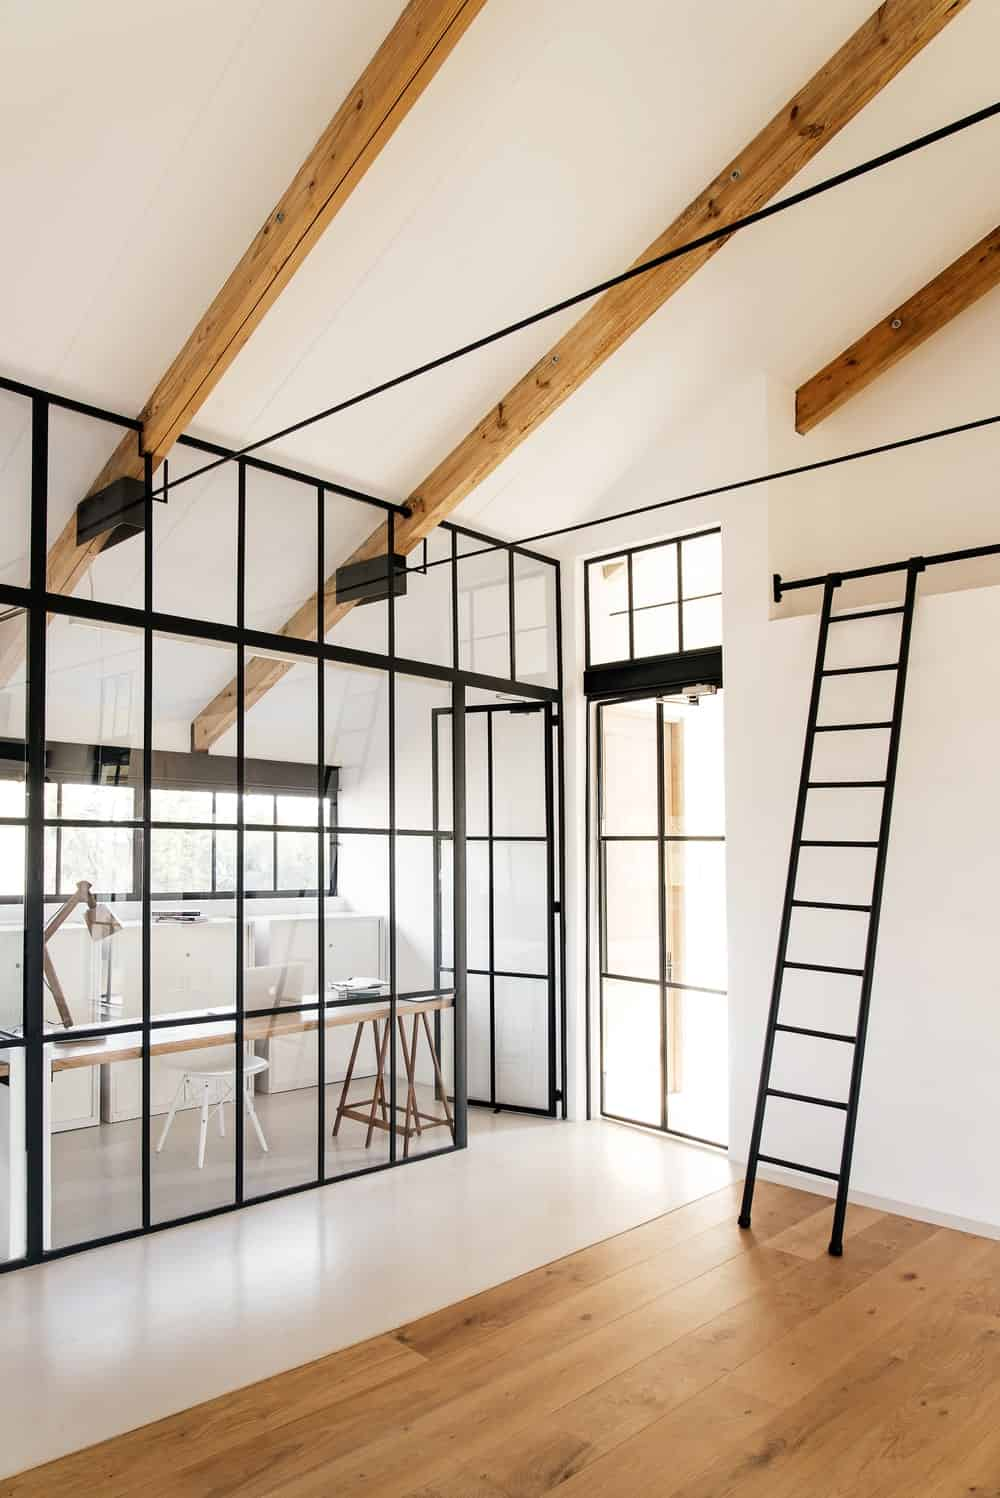 This is a simple and homey office with bright white walls and large ceiling with exposed beams. These makes the black frames of the glass wall stand out along with the glass window behind the desk.